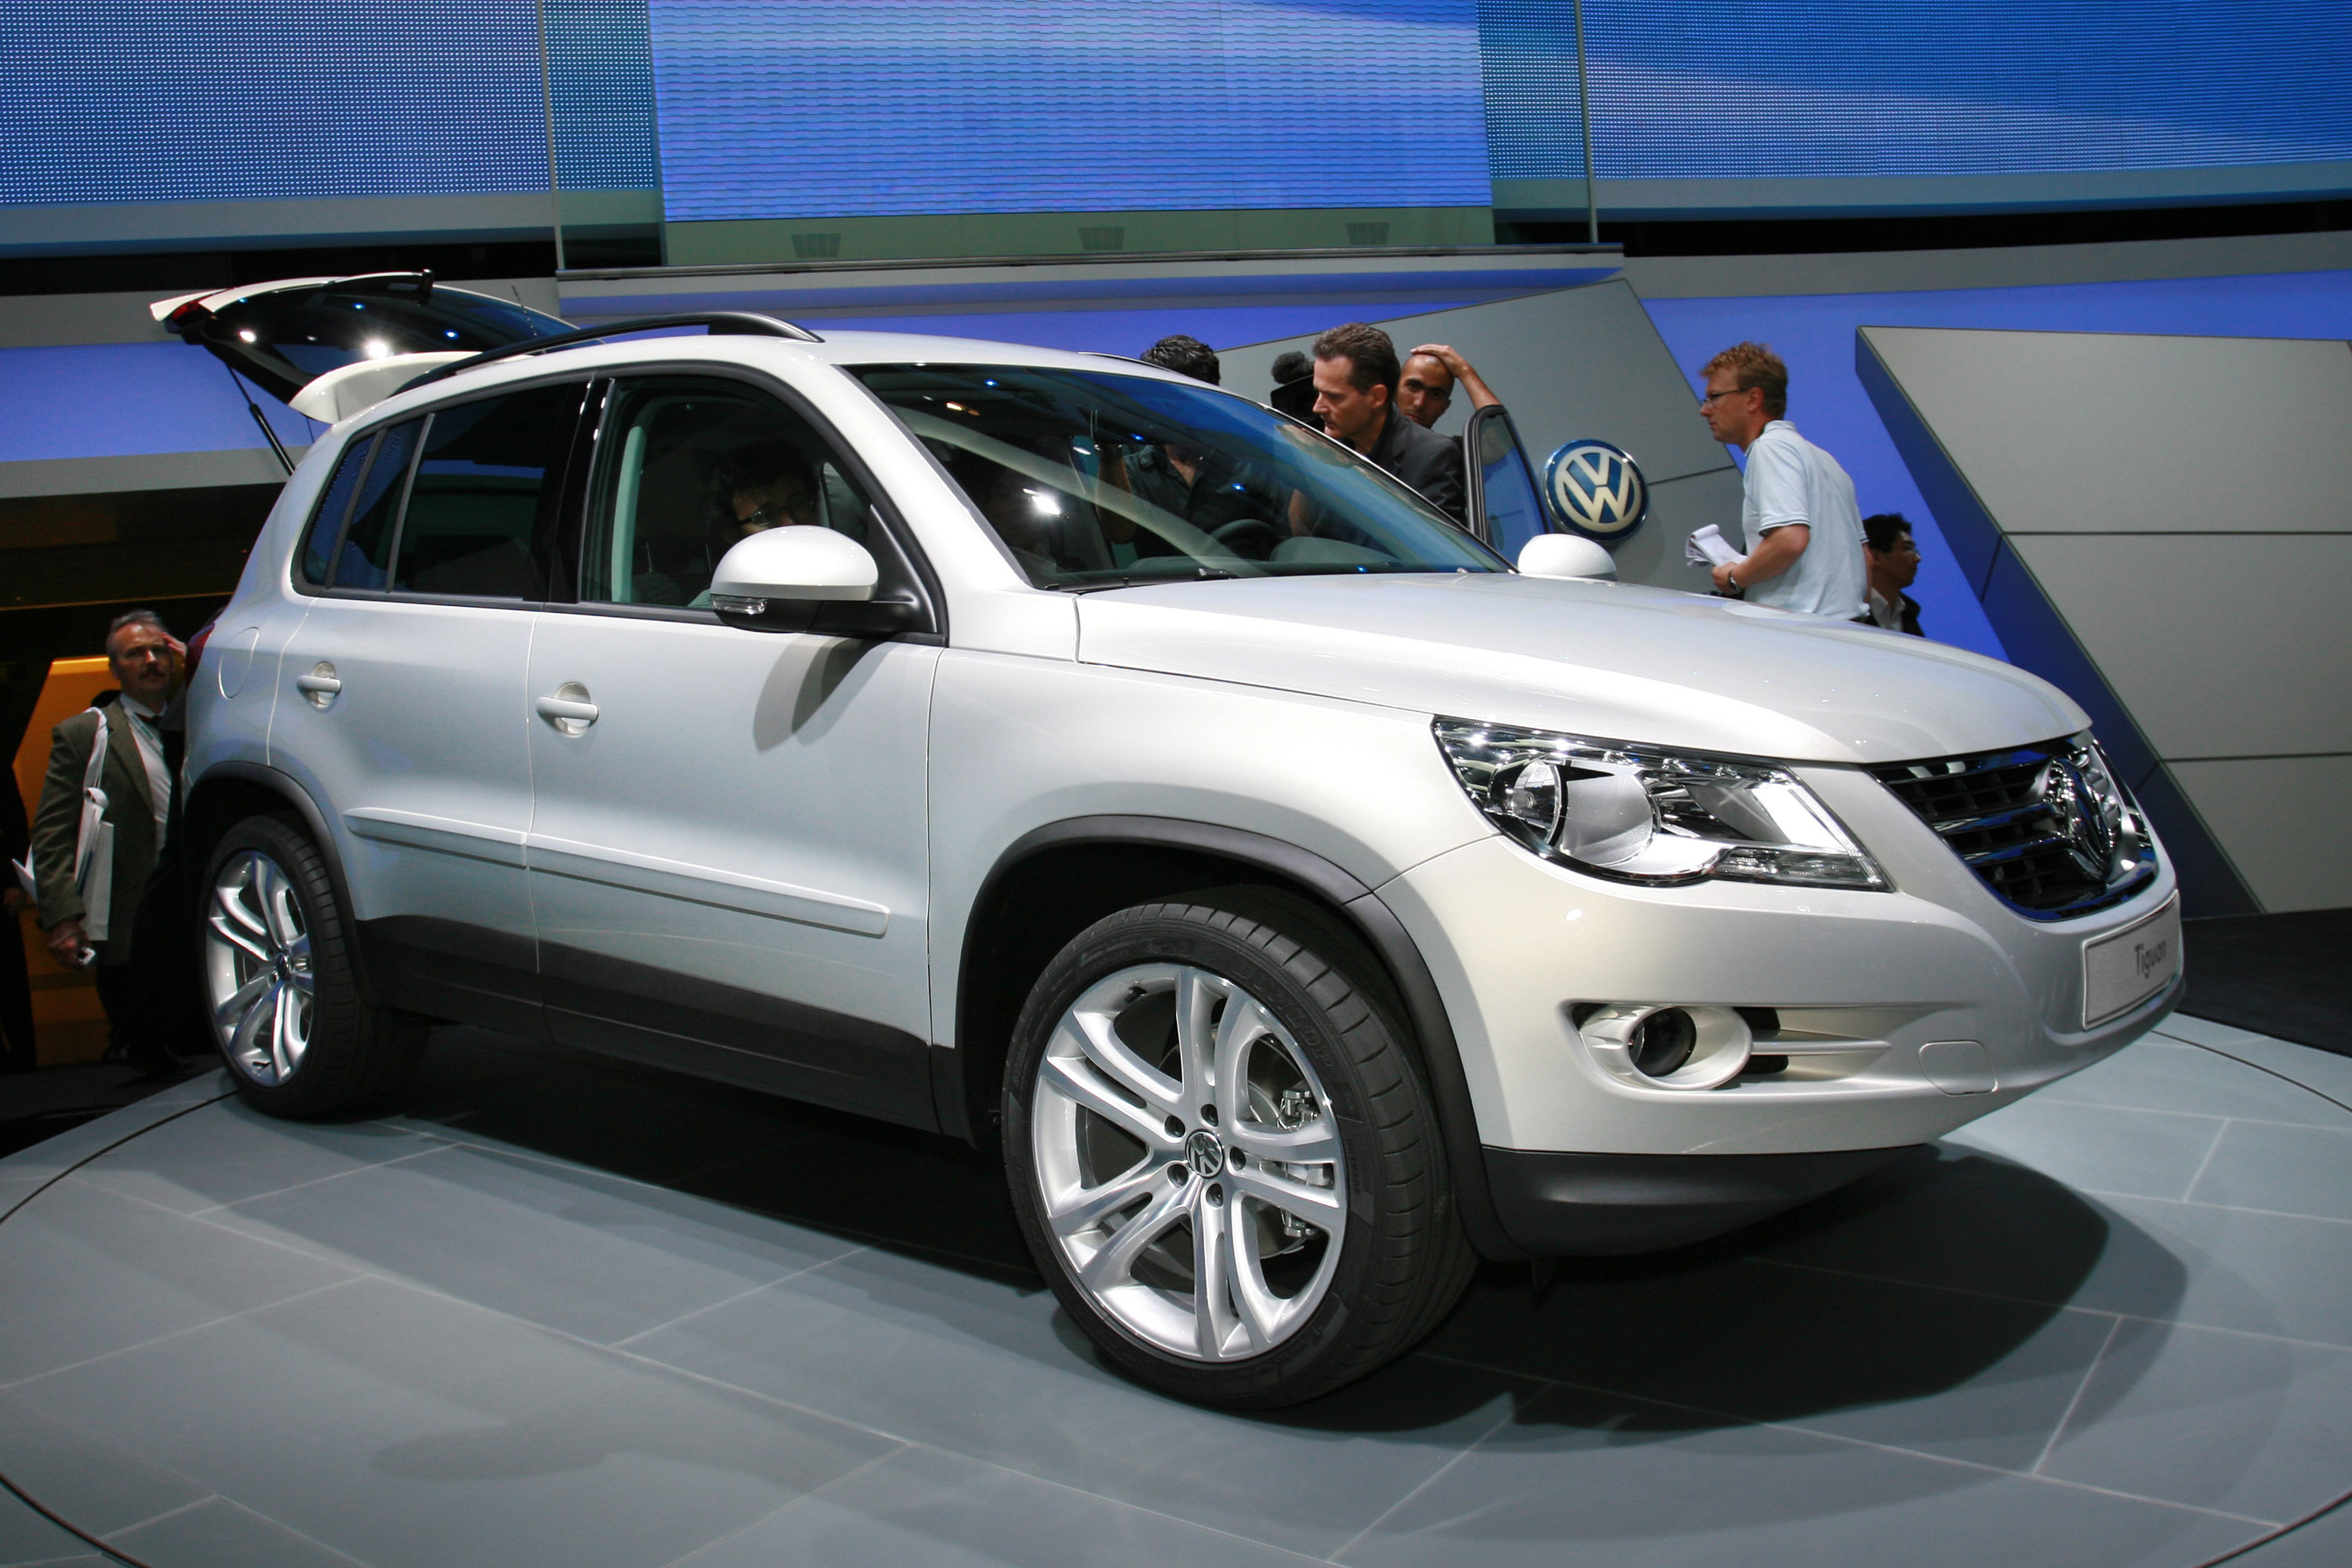 volkswagen tiguan frankfurt 2011 picture 59228. Black Bedroom Furniture Sets. Home Design Ideas